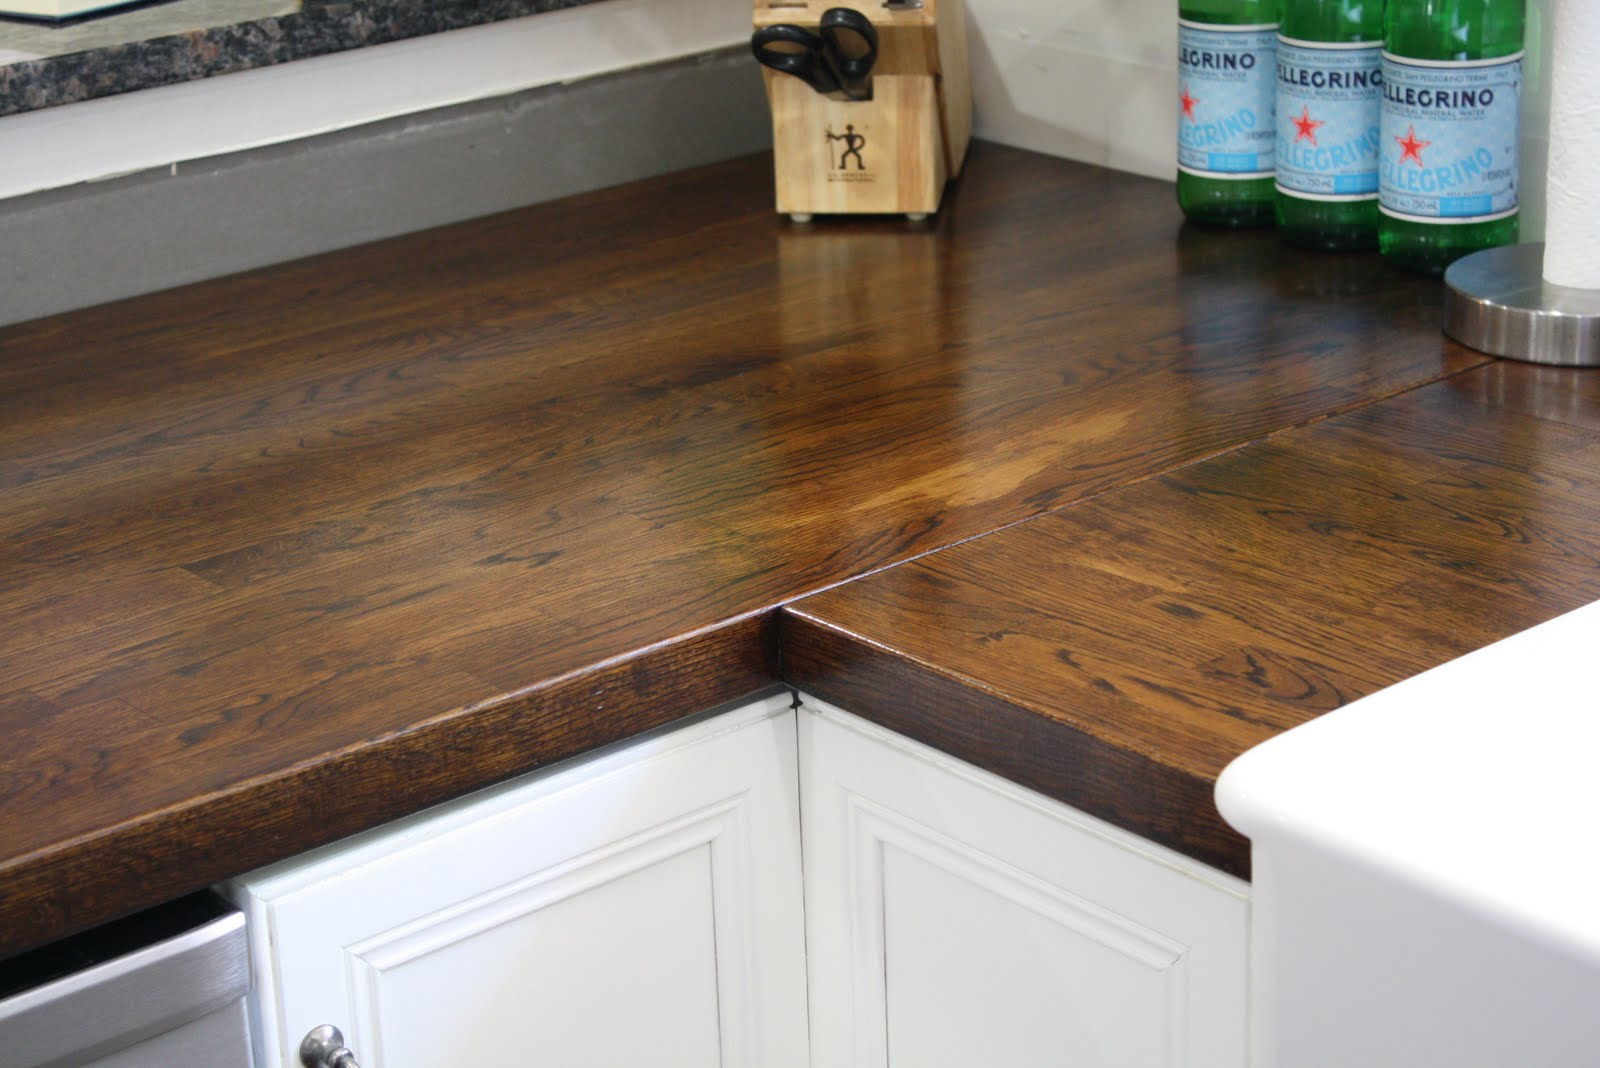 Elegant Where Can I A Butcher Block Countertop Laura Williams